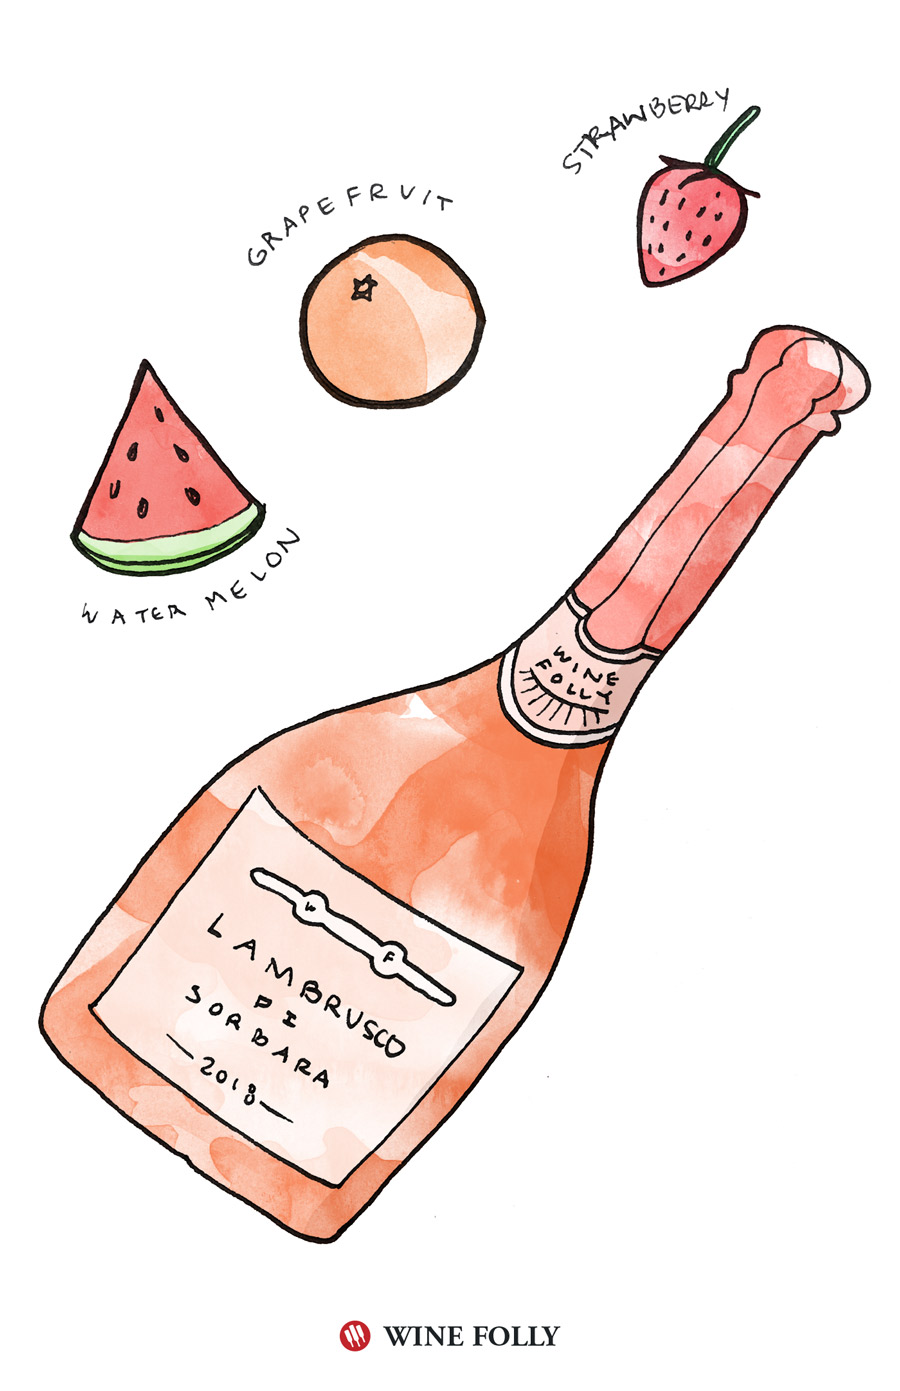 Lambrusco di Sorbara Recommendation Illustration by Wine Folly